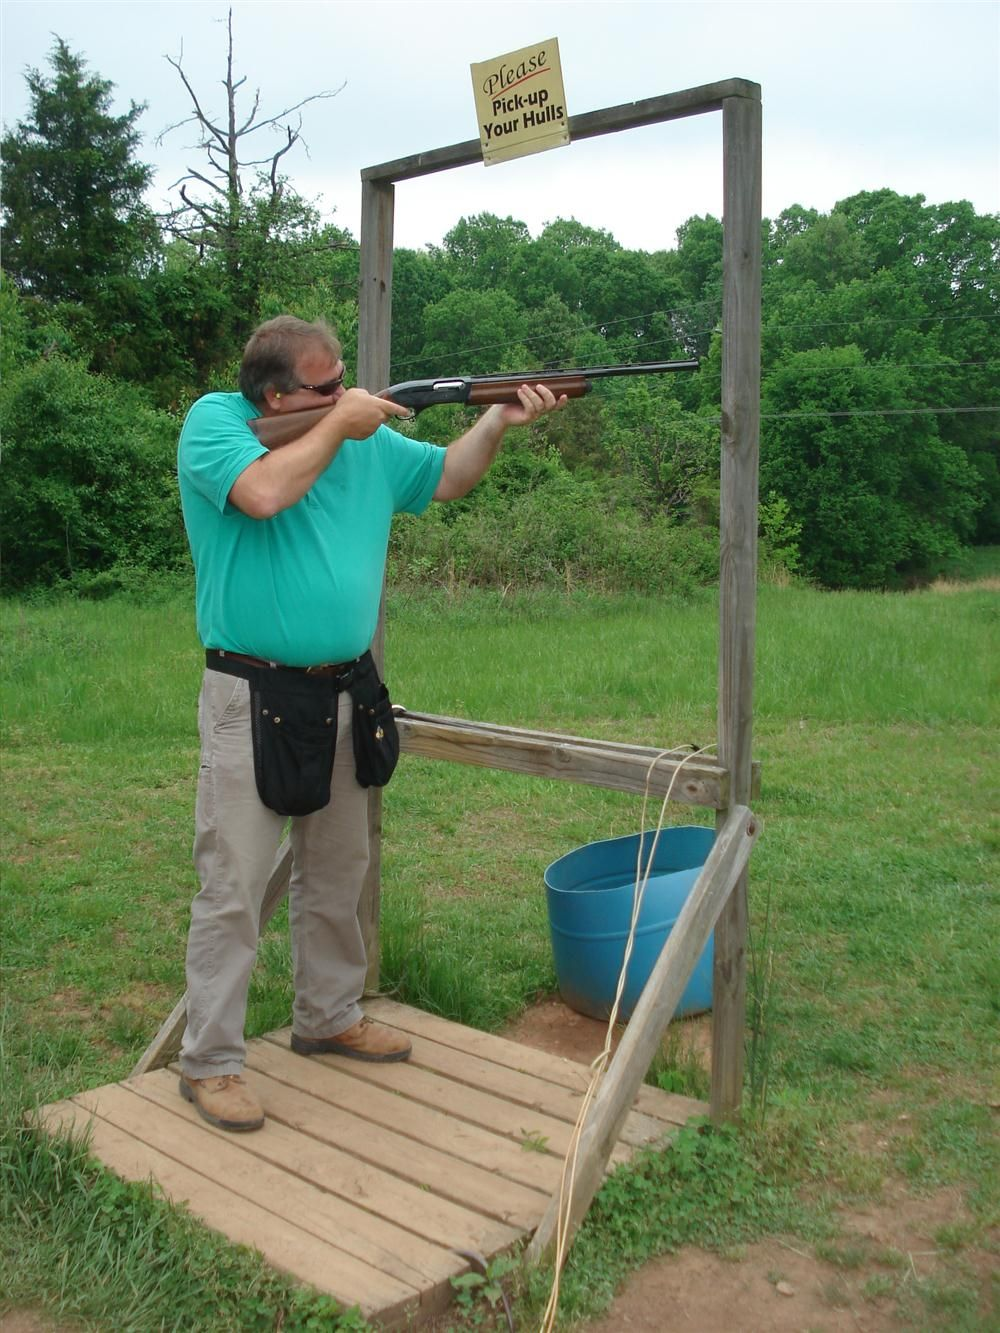 Paul Ware of Martin Marietta Materials took perfect aim and blasted both clays.